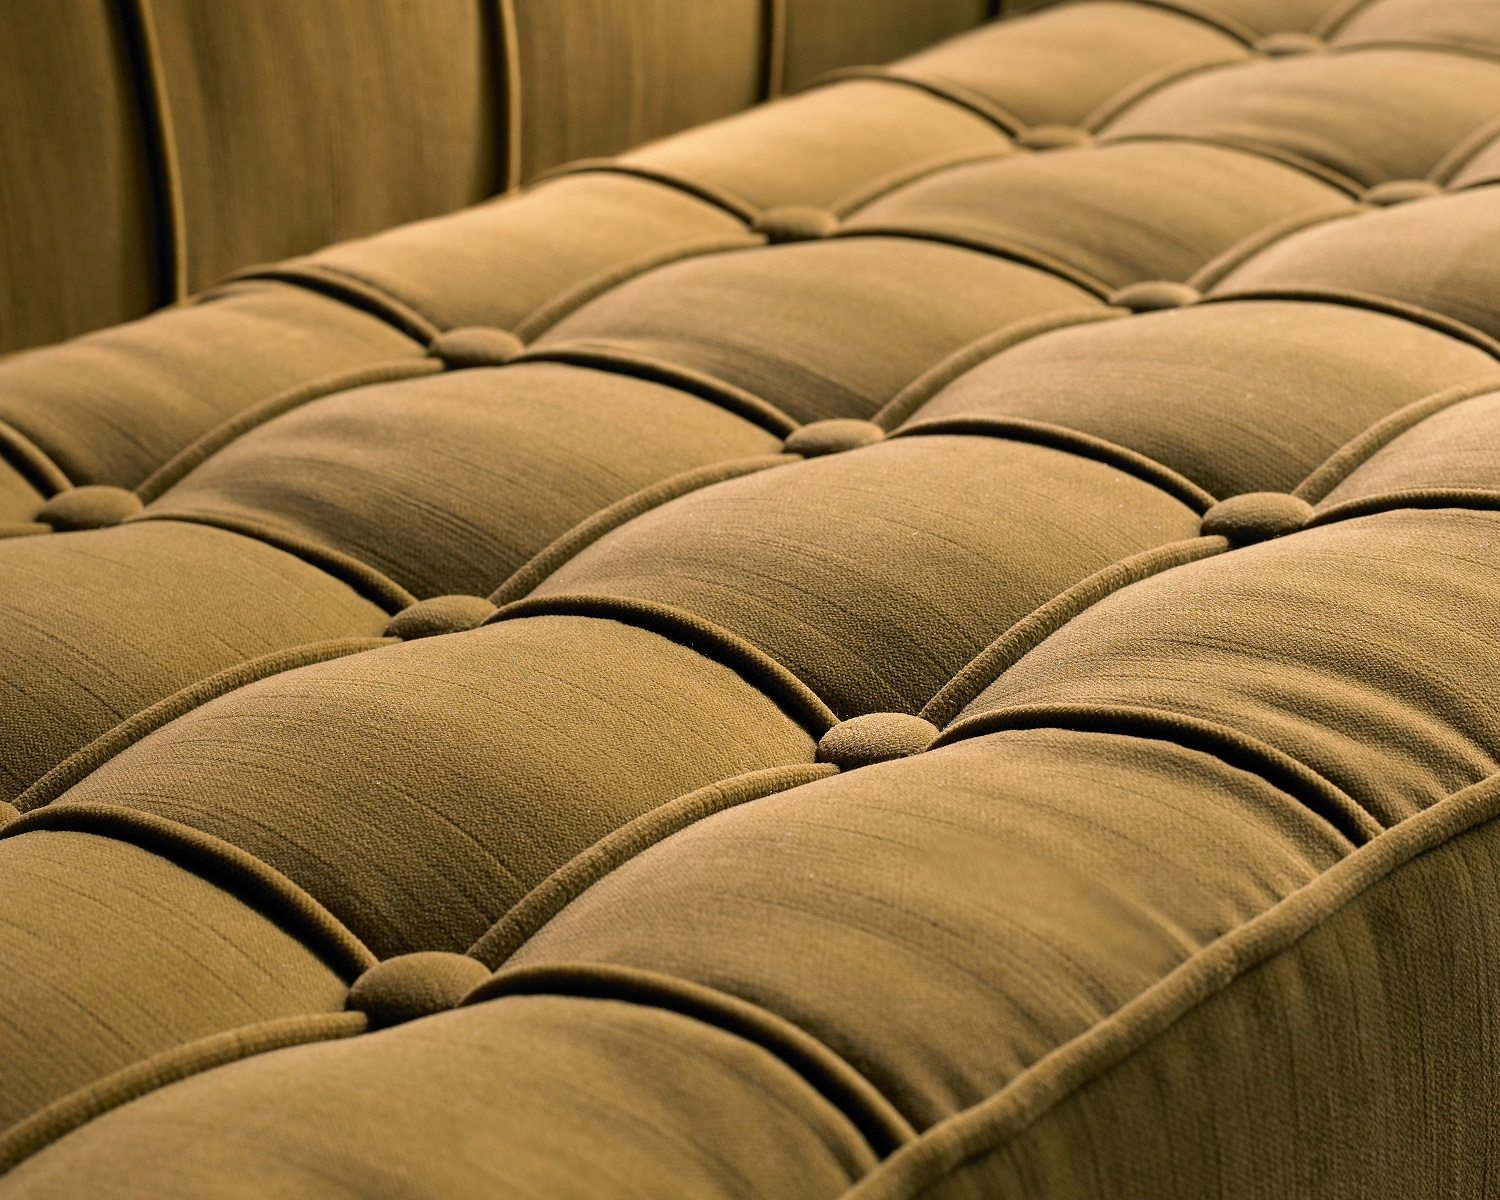 luxe-seat-close-up